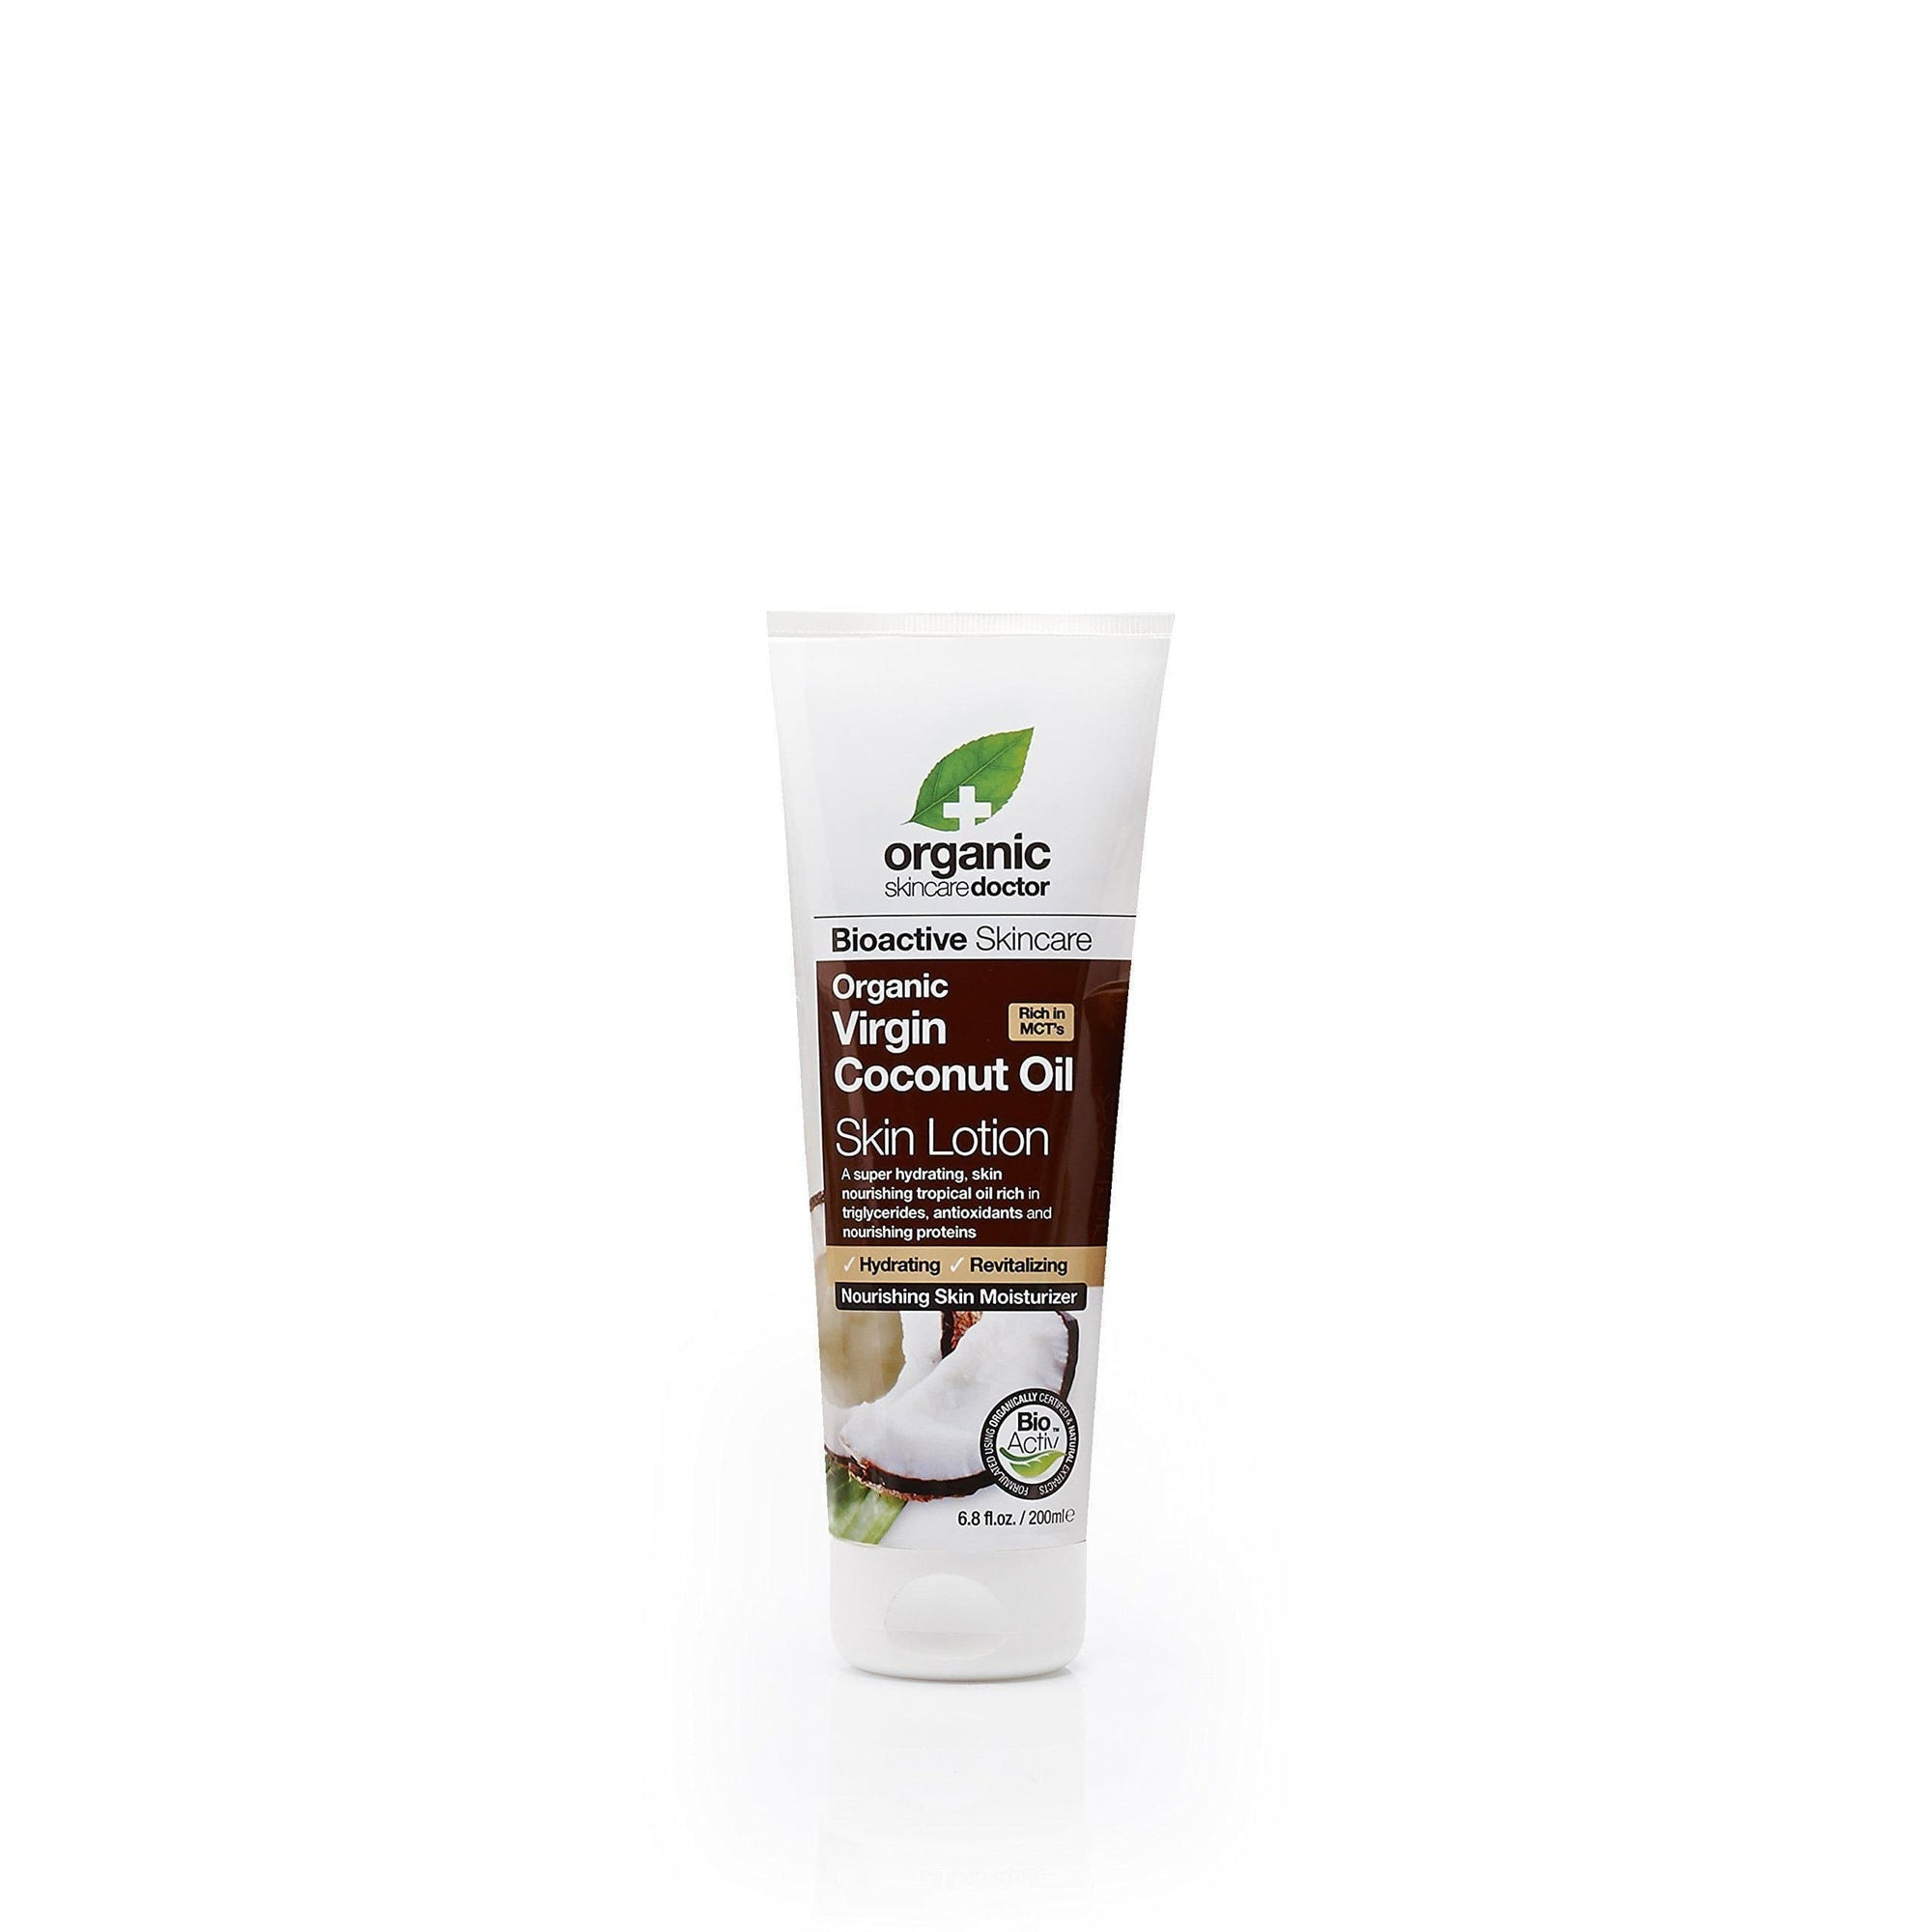 Dr Organic Skin Lotion Organic Virgin Coconut Oil